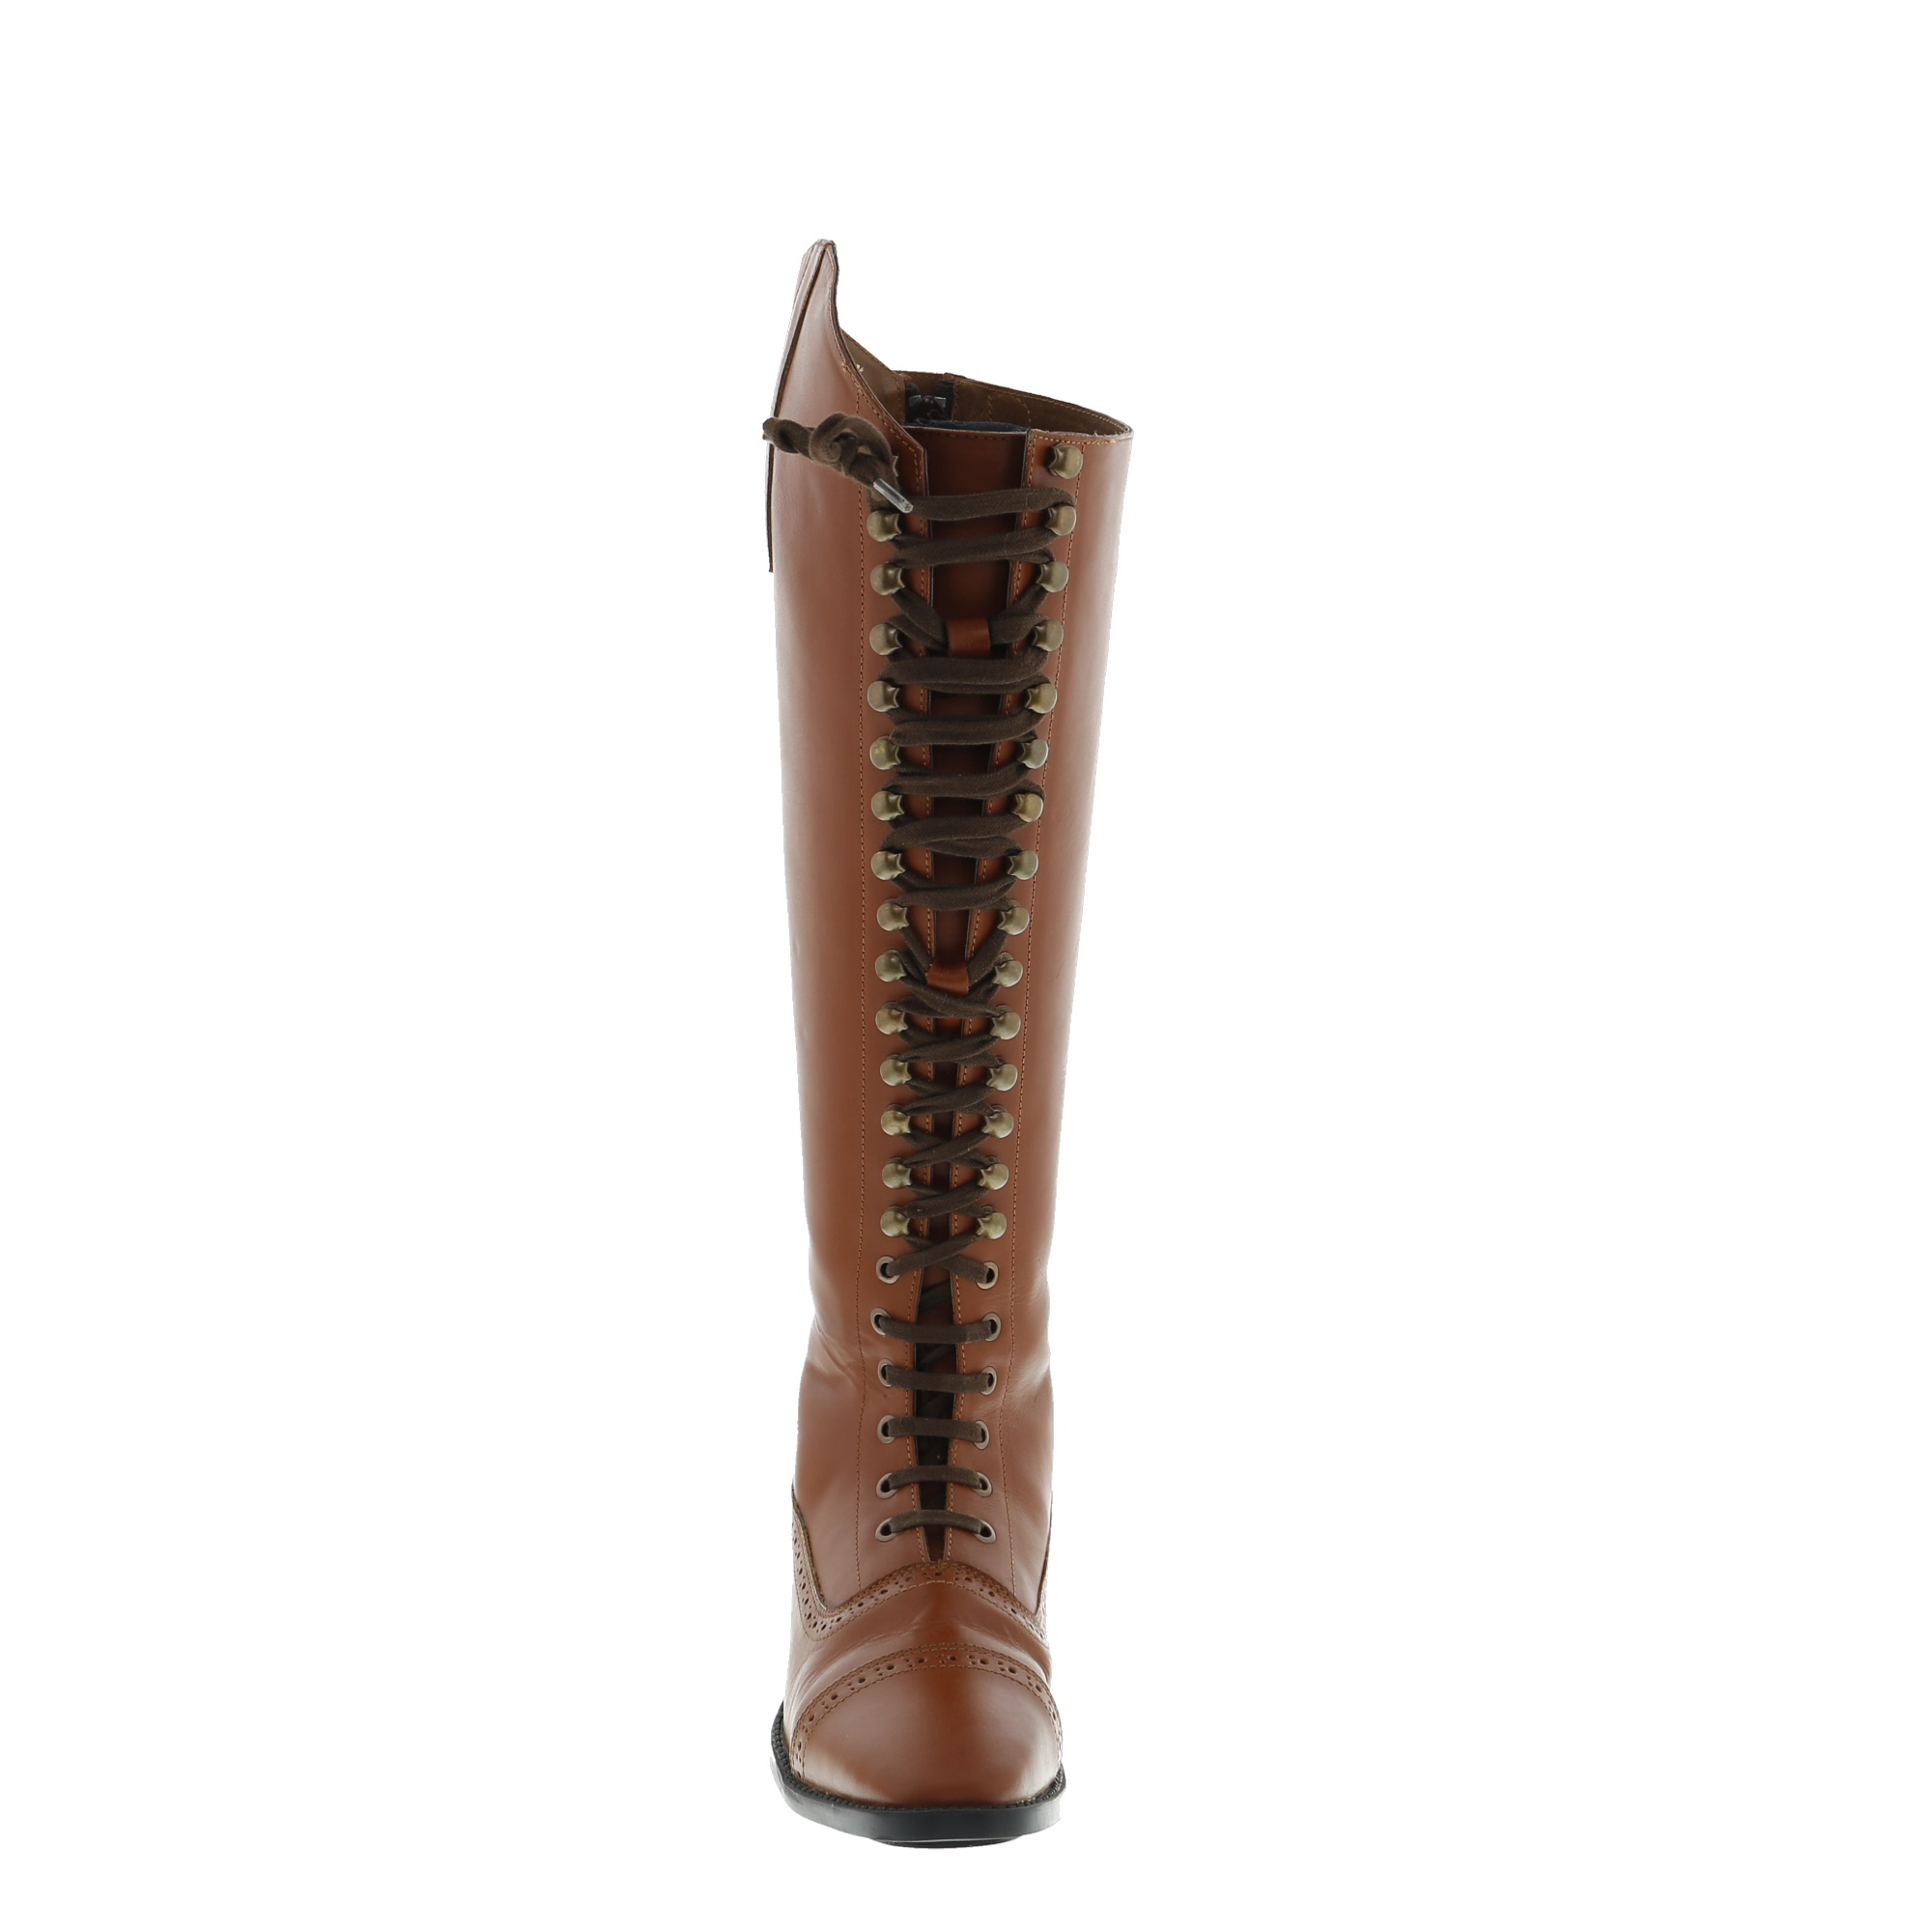 The Pippin Lace Up Dressage Boot